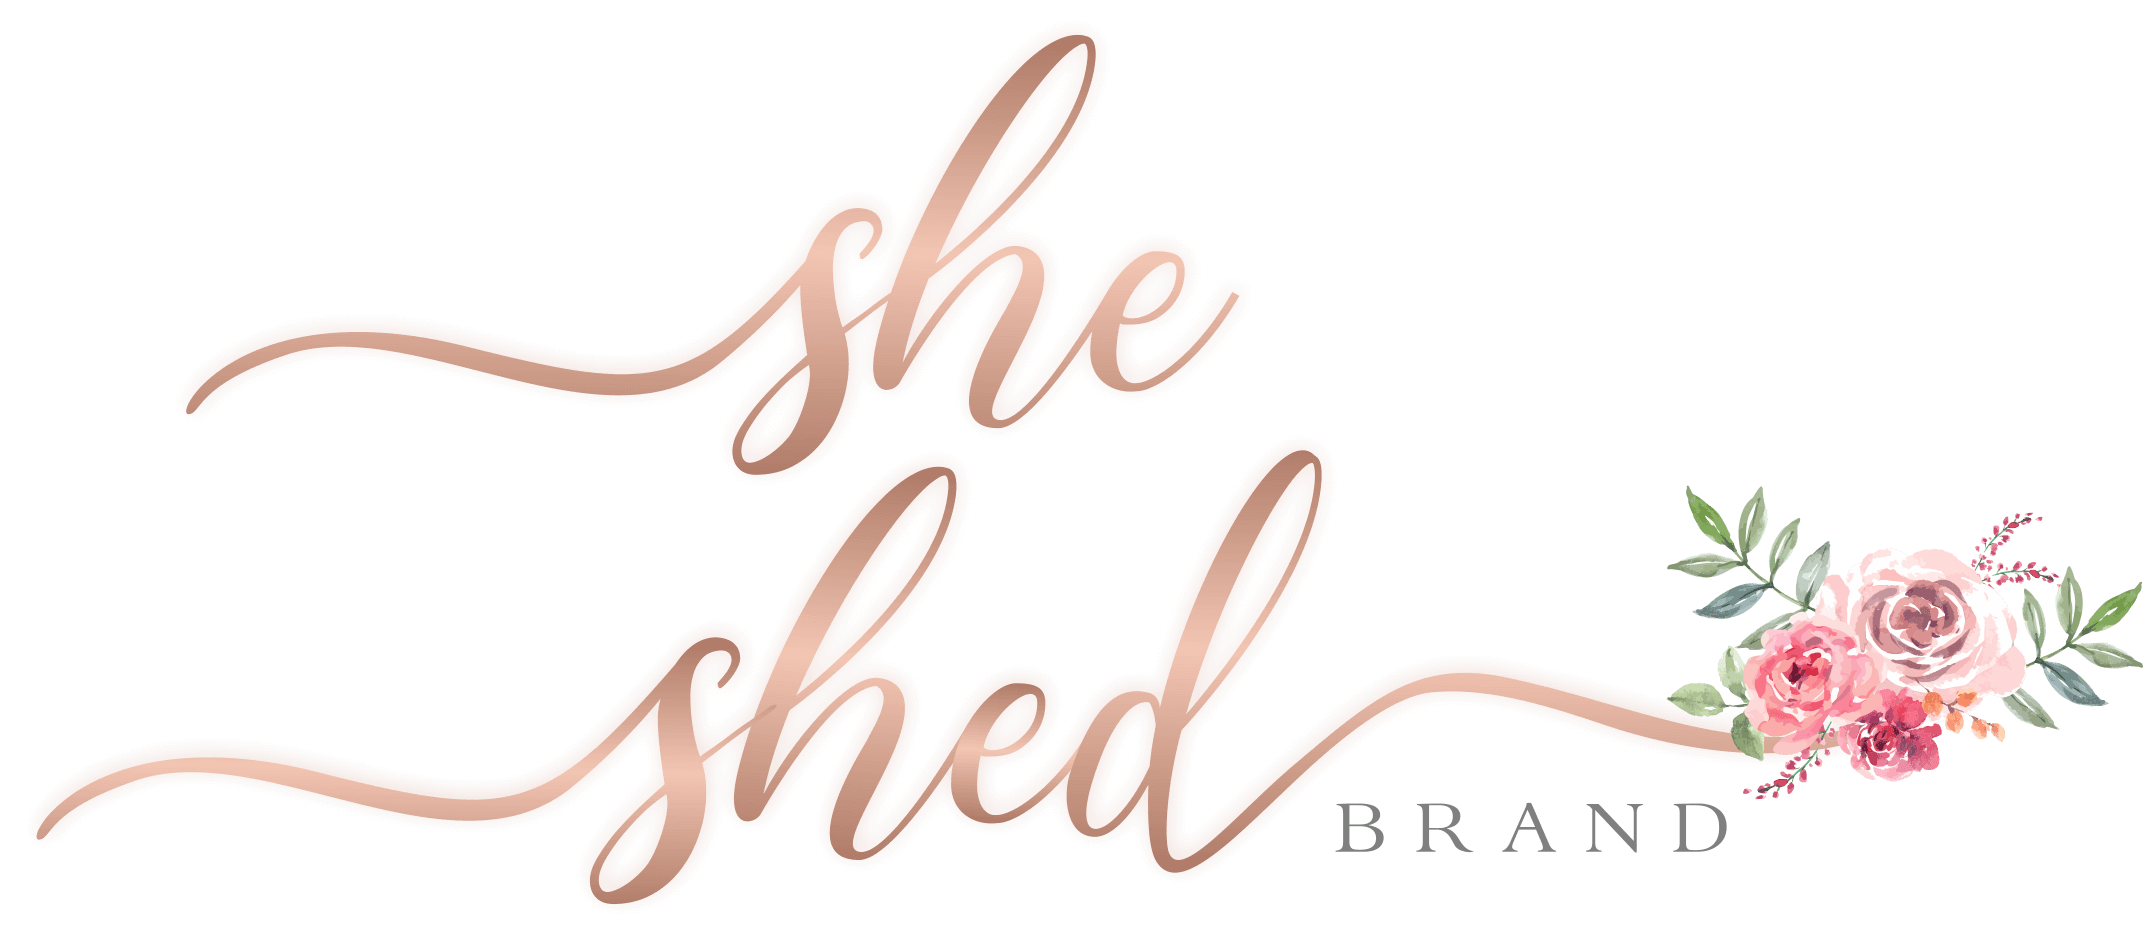 She Shed - The Boutique Hub